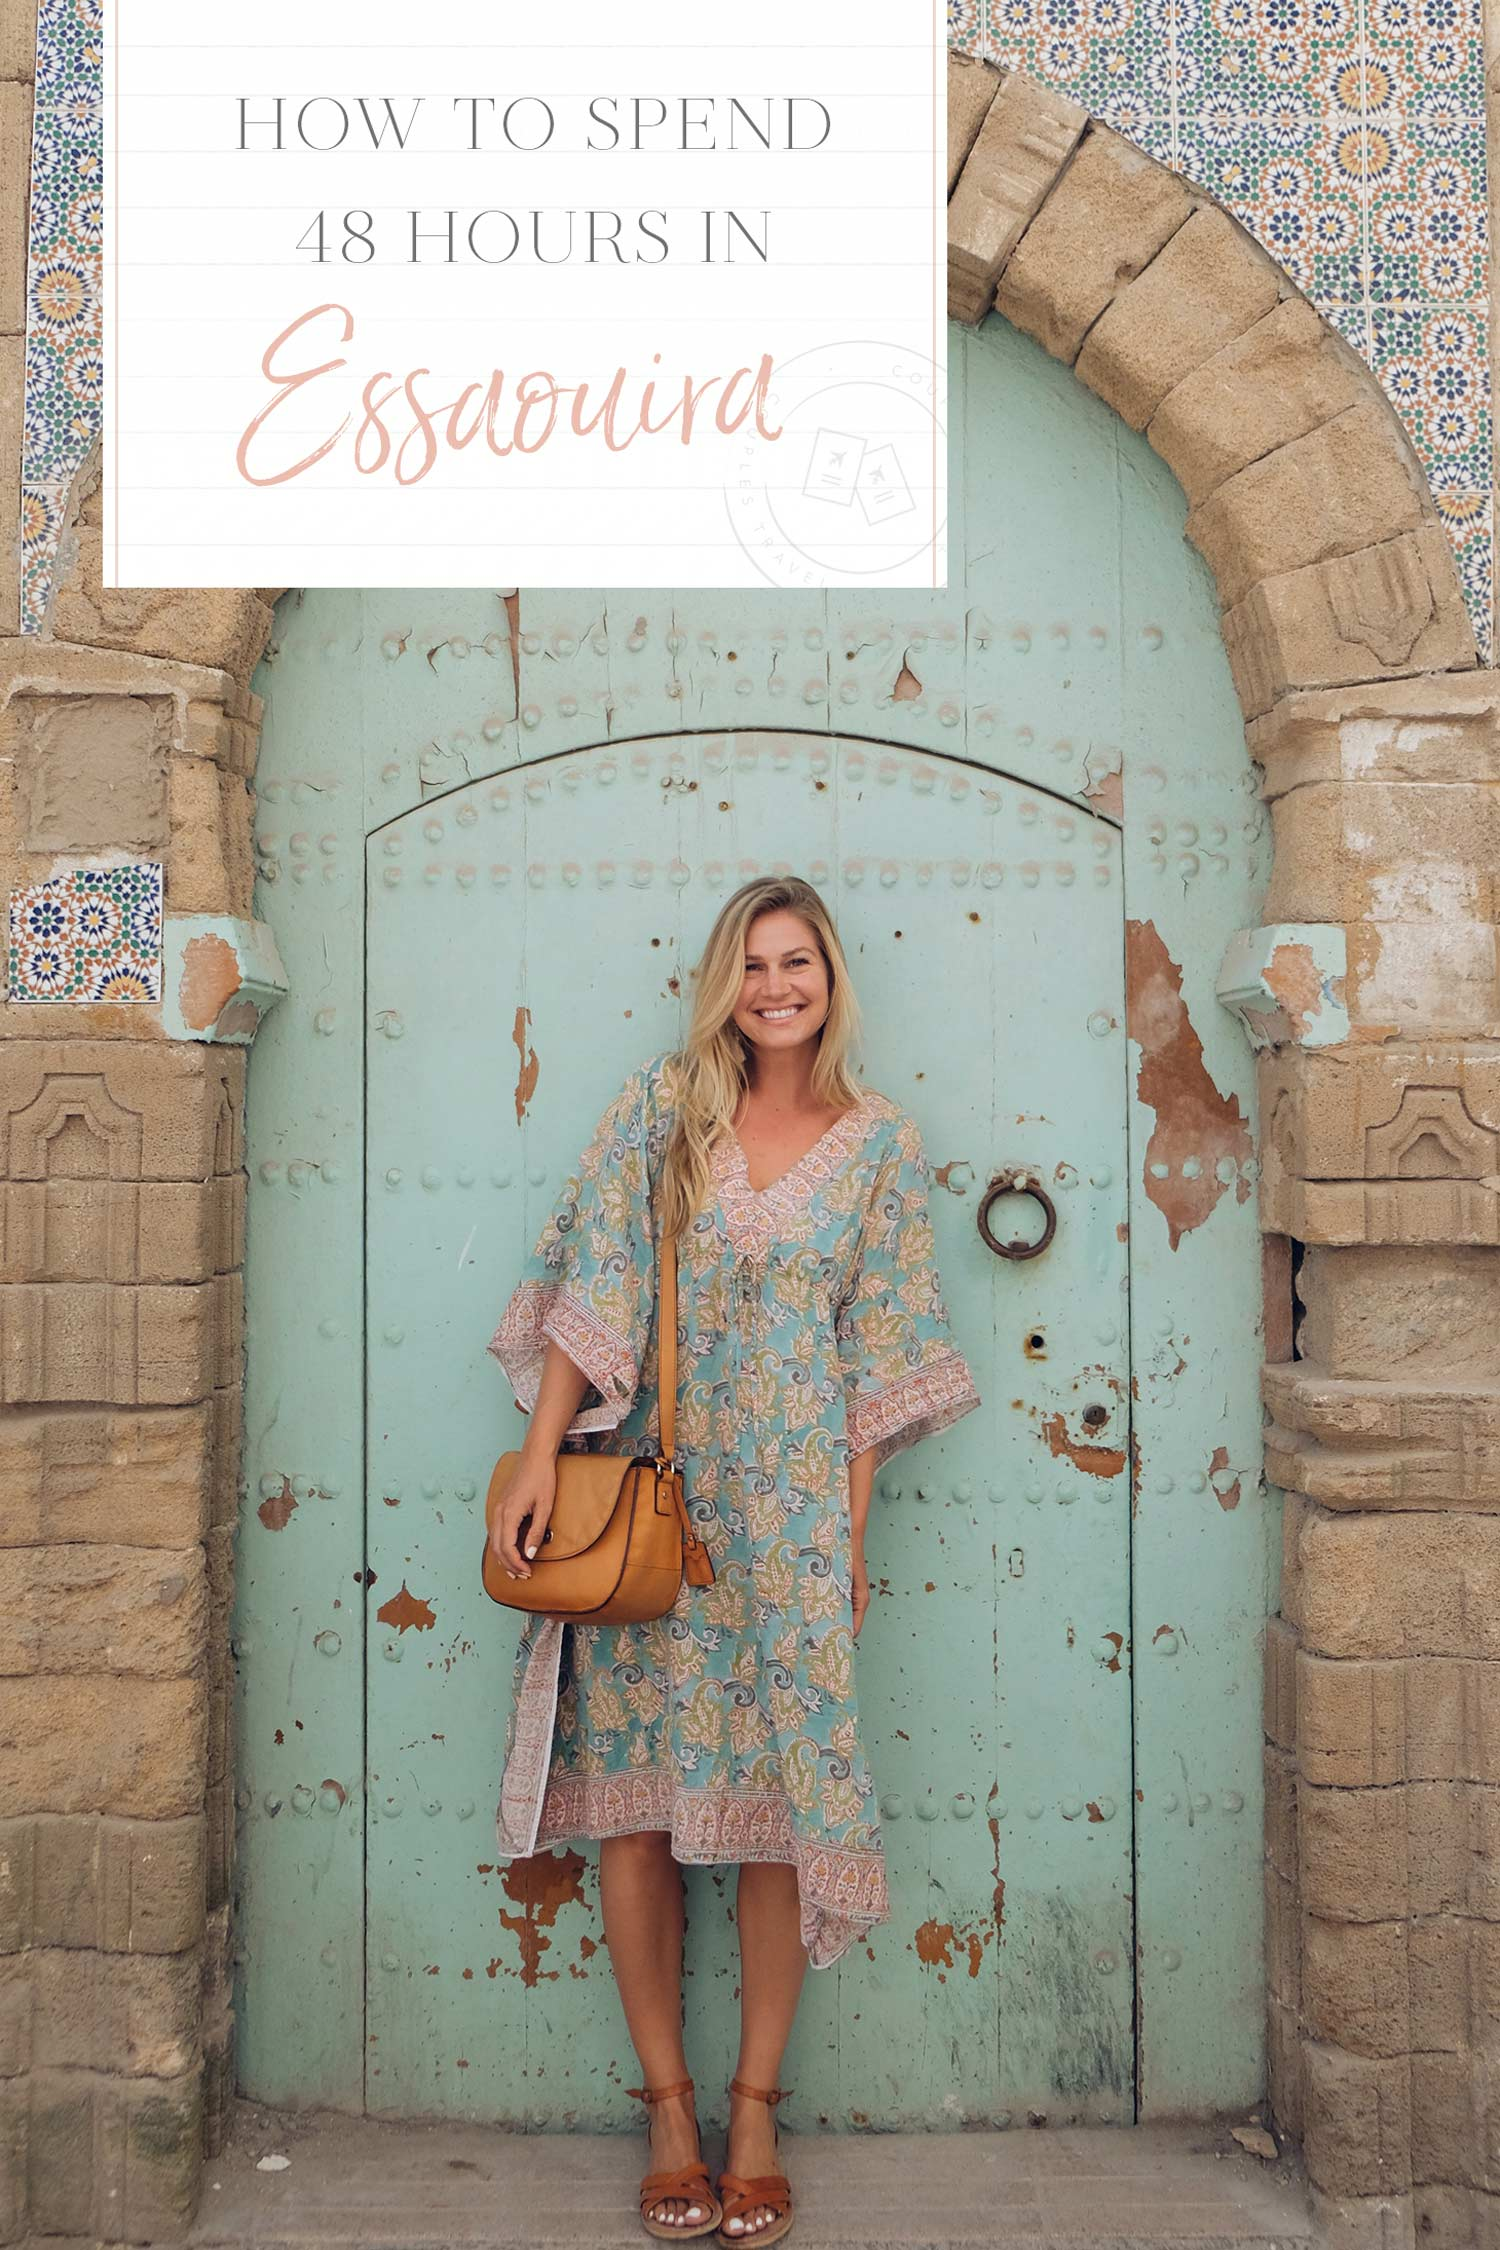 how to spend 48 hours in essaouira